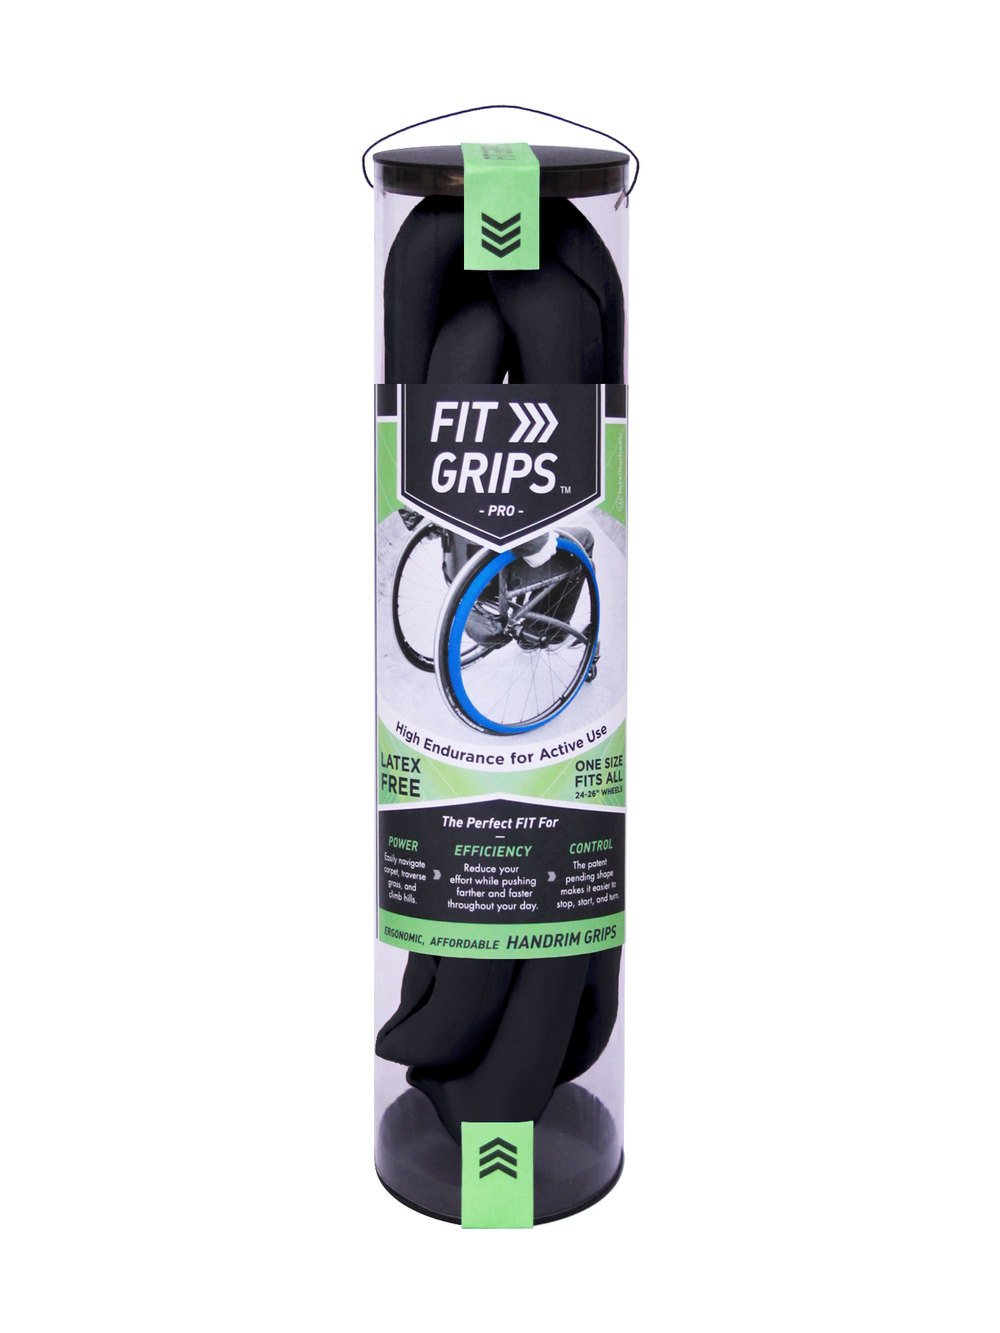 Fit Grips - PRO (Jet Black) (Fits 24-26'' Wheels, Great for Most Wheelchairs)